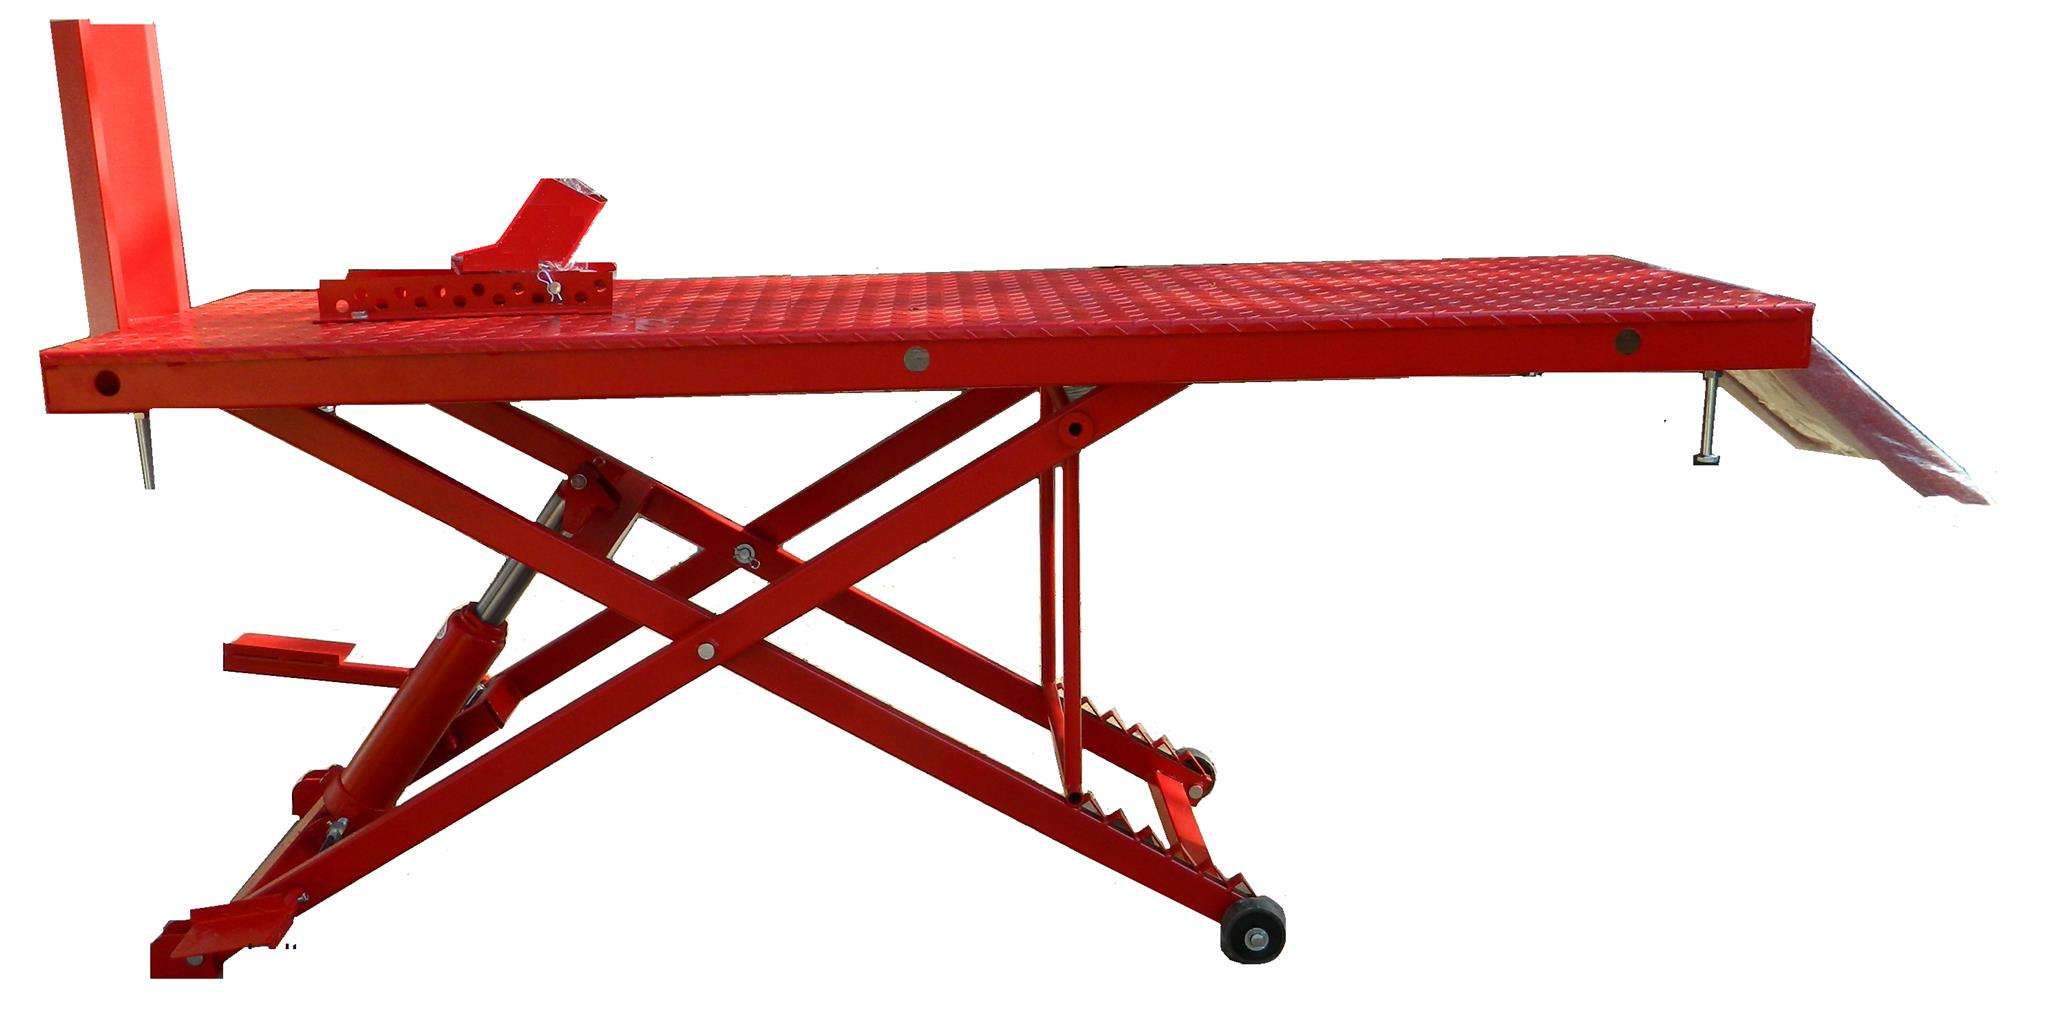 Bike lift / Motorcycle lift hold bikes up to 350kg